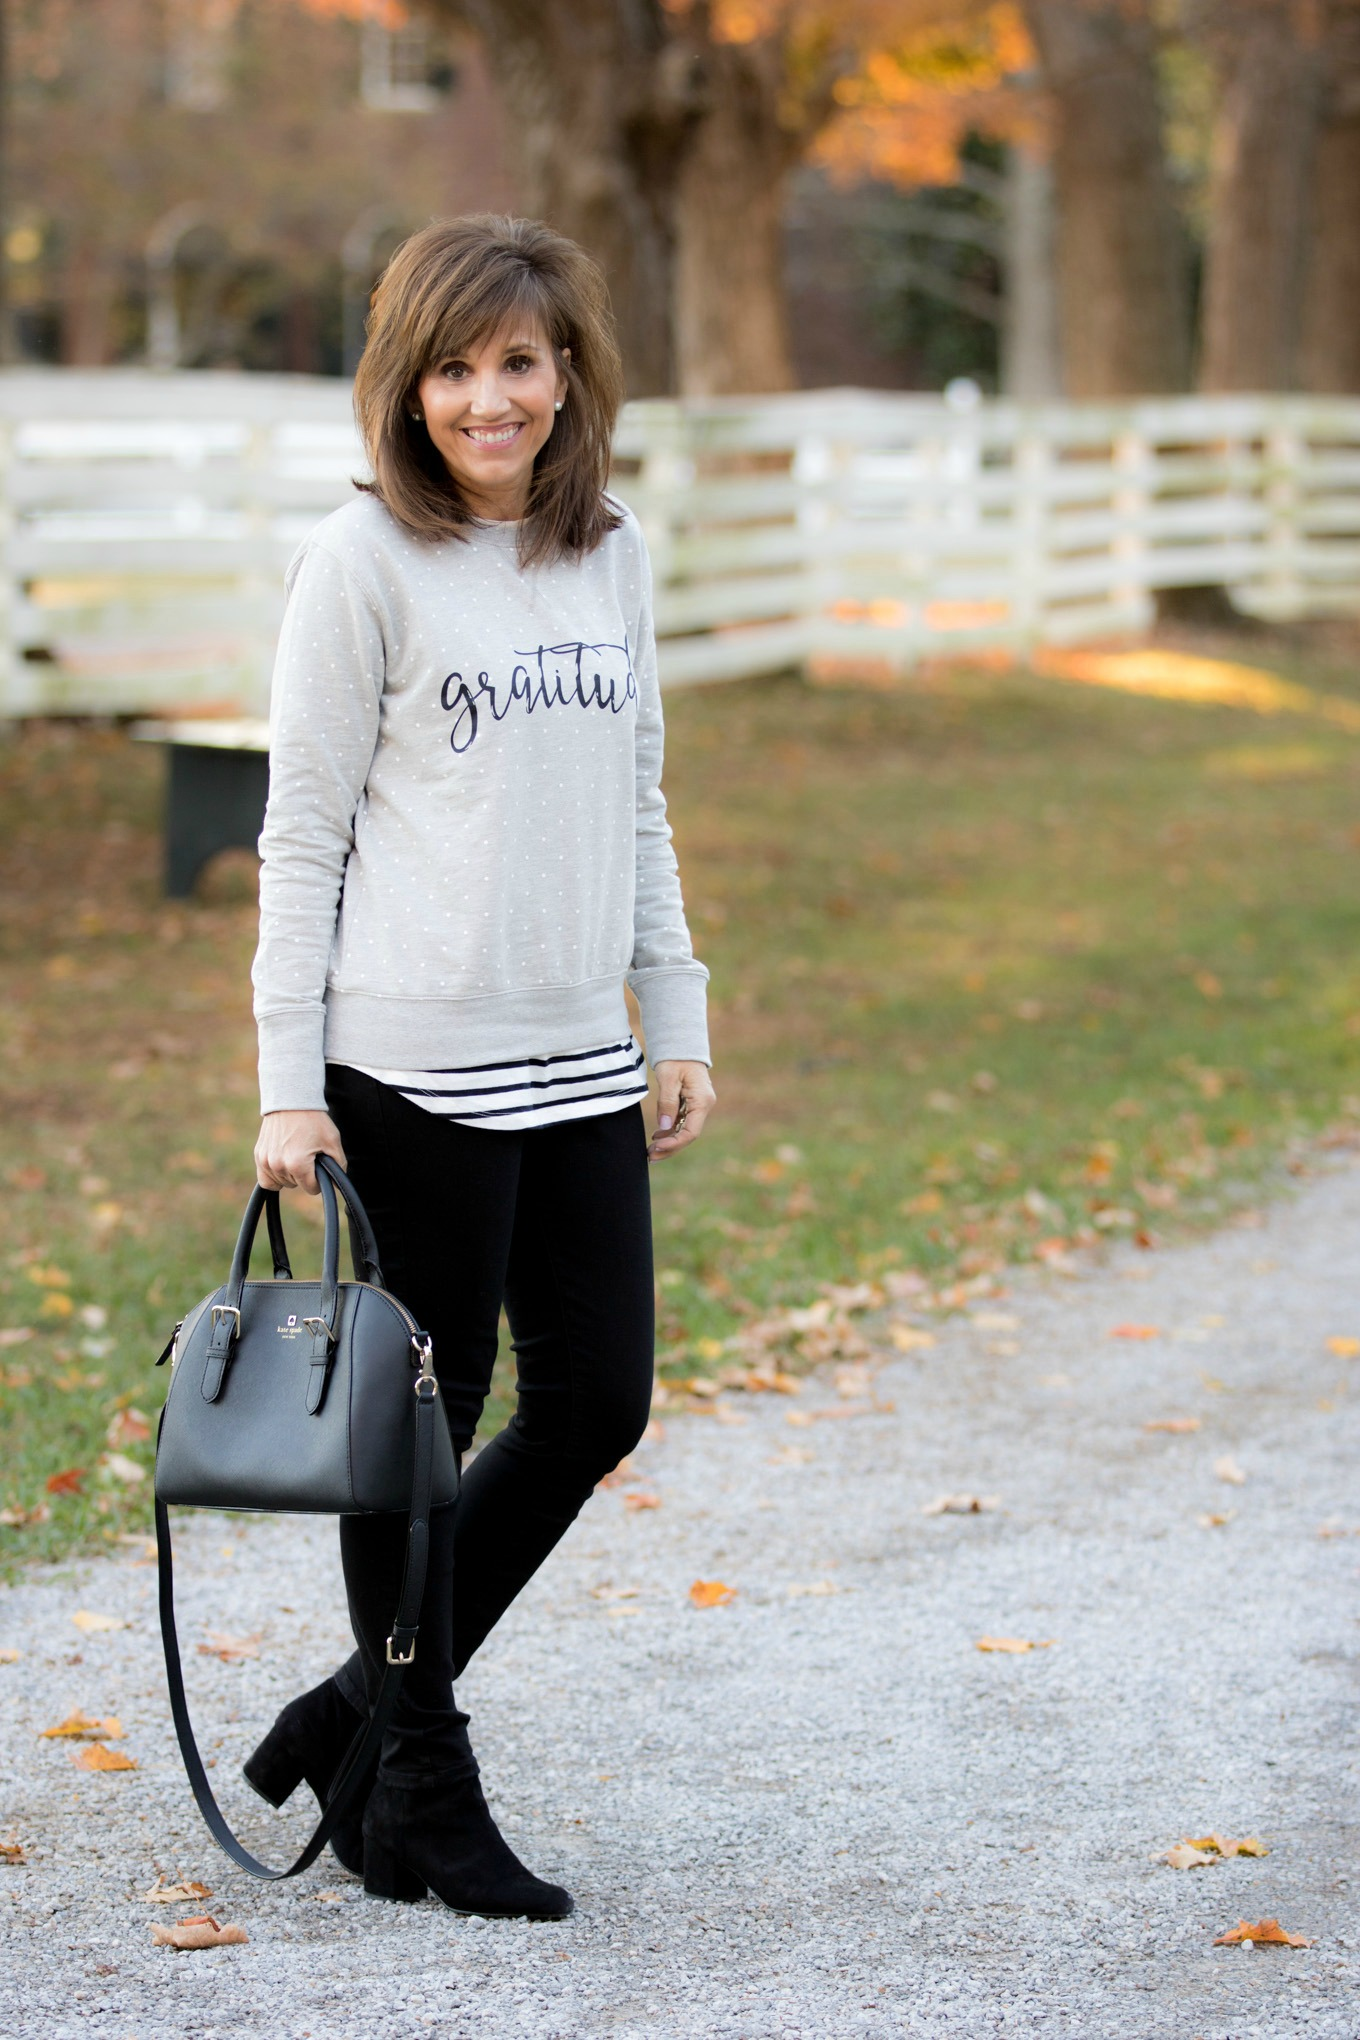 Fashion blogger, Cyndi Spivey, sharing a gratitude sweatshirt from Glamour Farms Boutique.